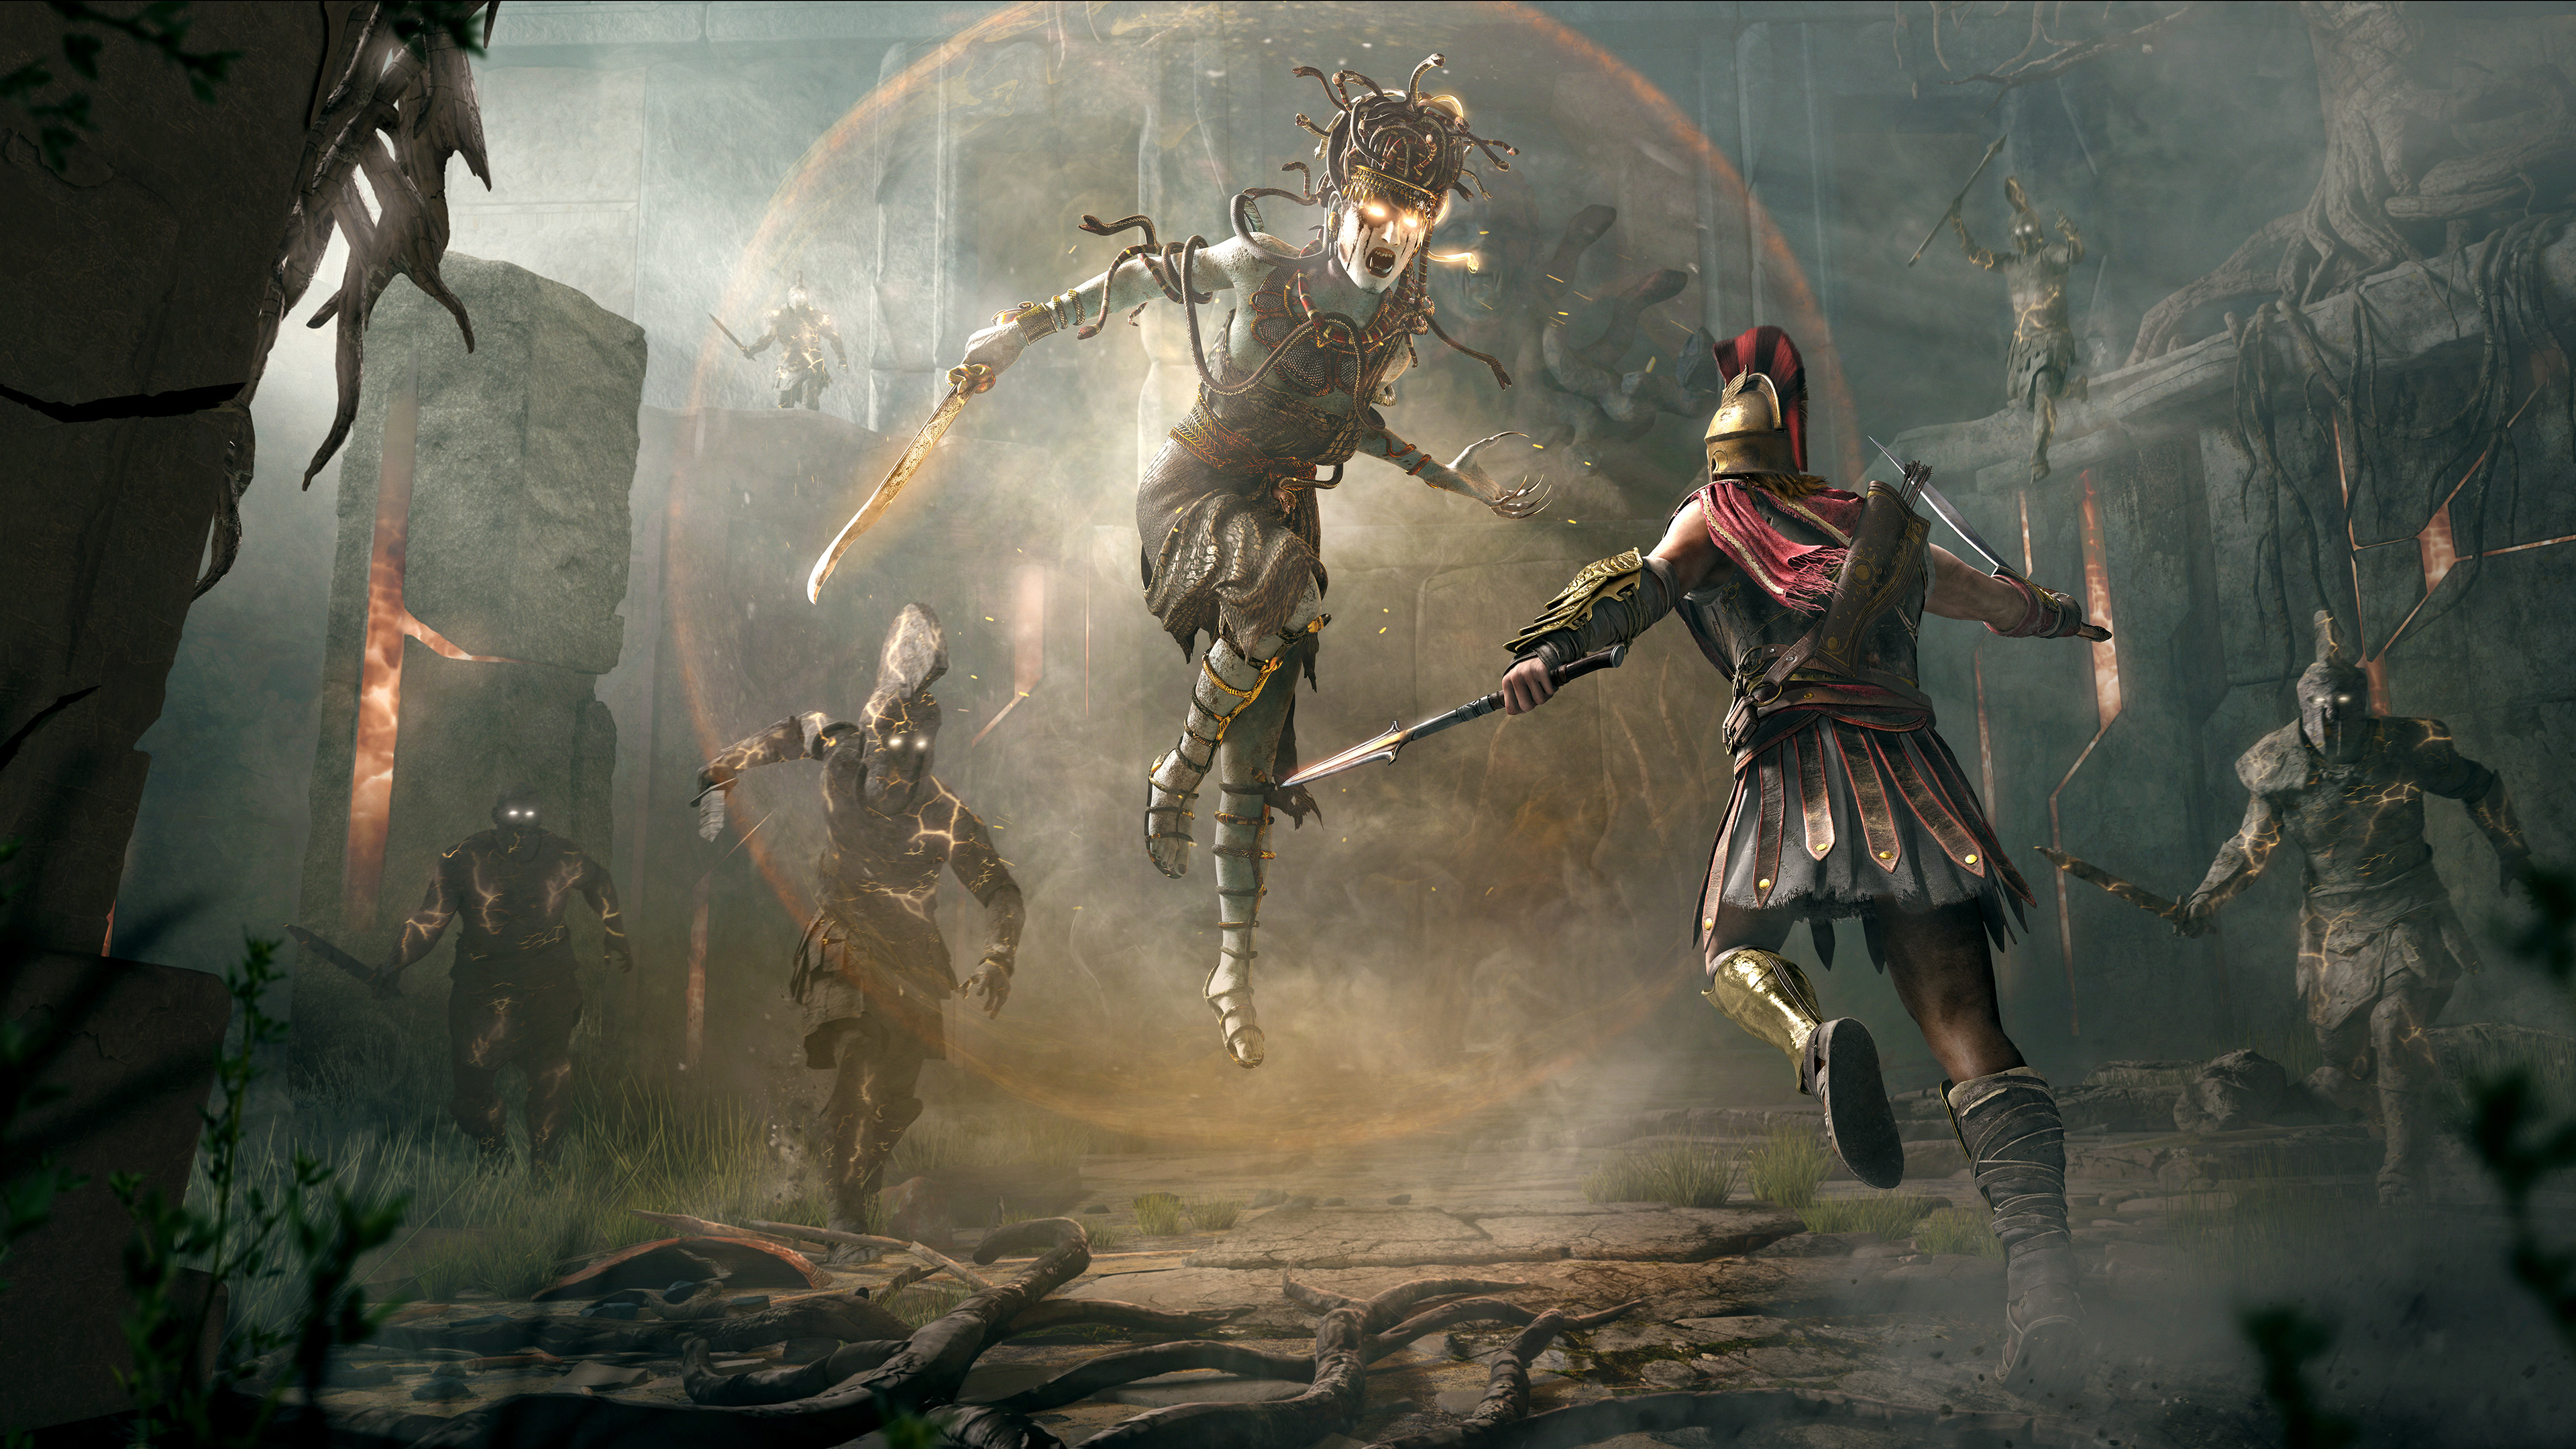 Wallpaper 4k Assassins Creed Odyssey Fight 4k 2018 Games